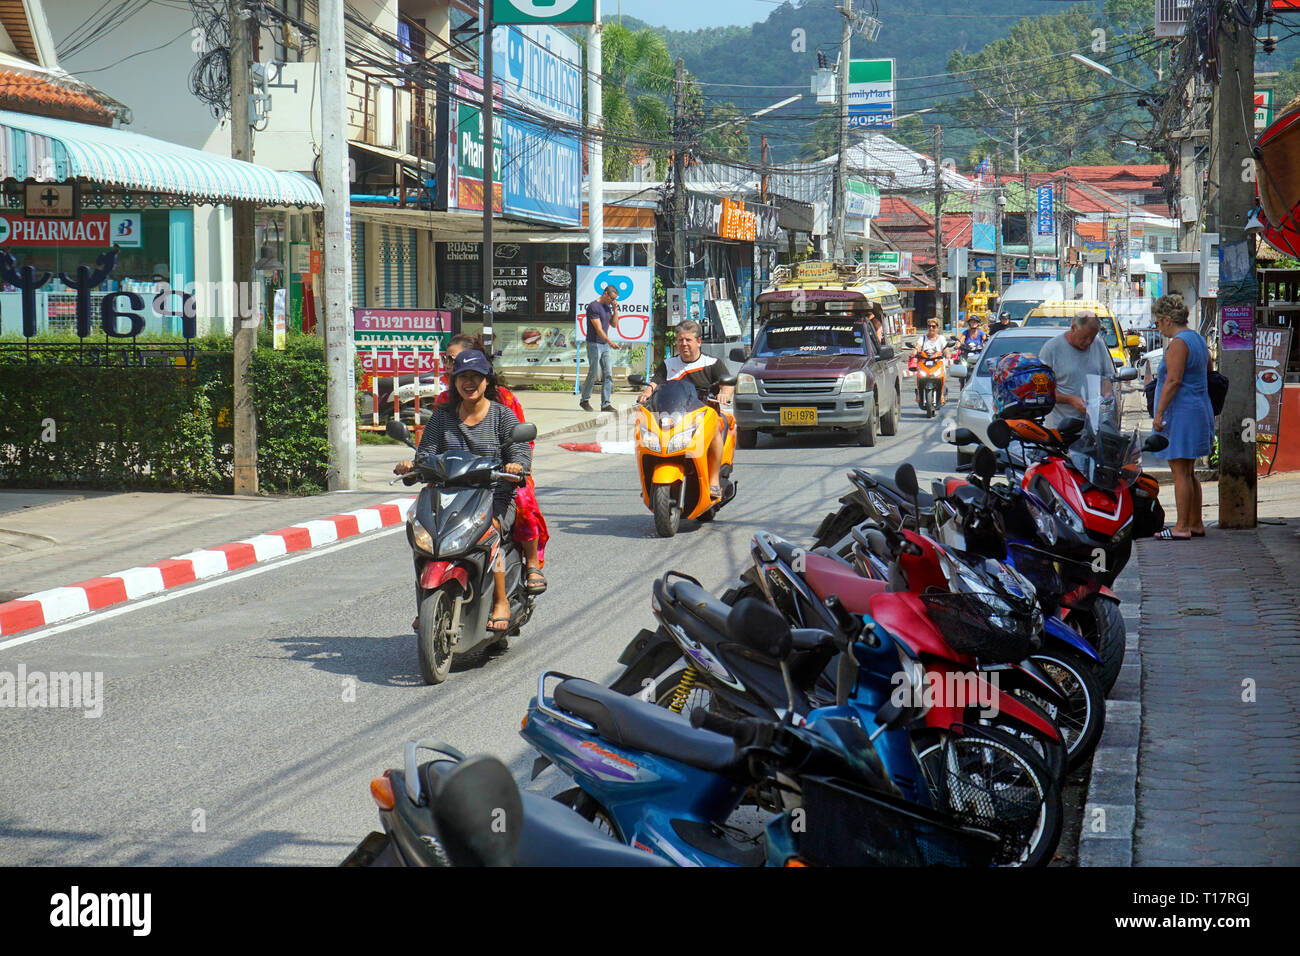 Motor scooter and share taxi 'Songthaew' at Lamai Beach, Koh Samui, Surat Thani, Gulf of Thailand, Thailand - Stock Image